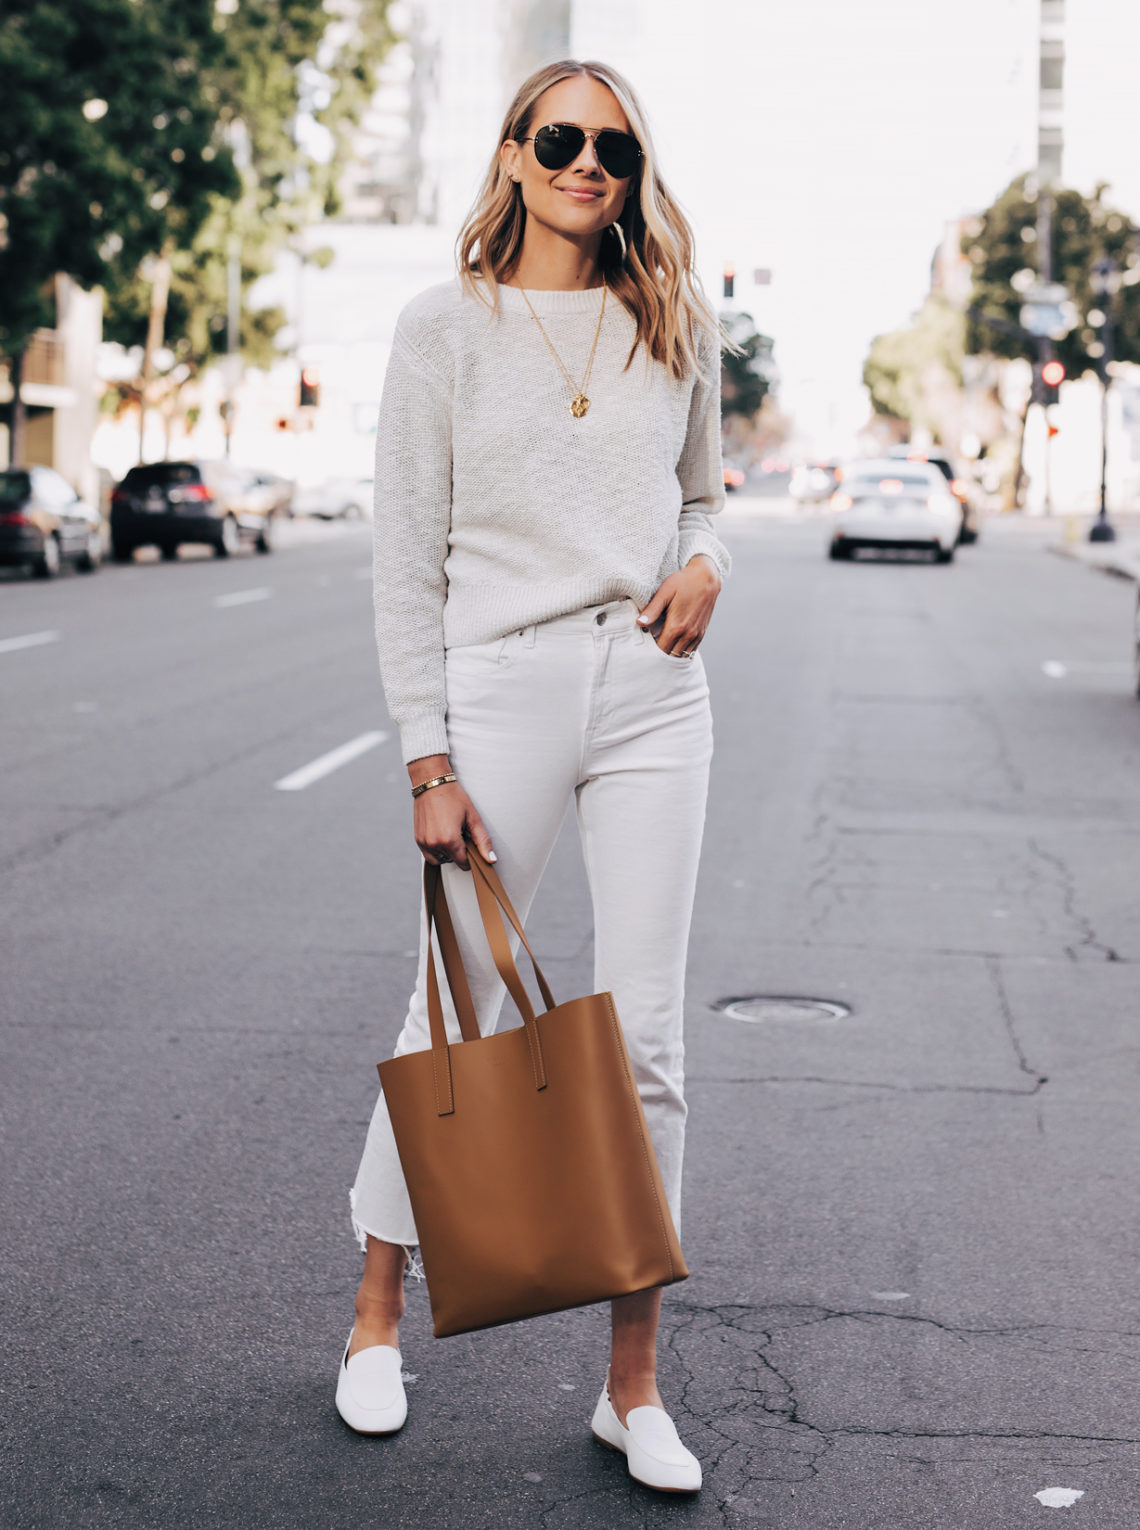 Blonde Woman Wearing Everlane Sand Cotton Linen Crew White Cropped Jeans White Day Loafer Tan Tote Featured Image Fashion Jackson San Diego Fashion Blogger Street Style